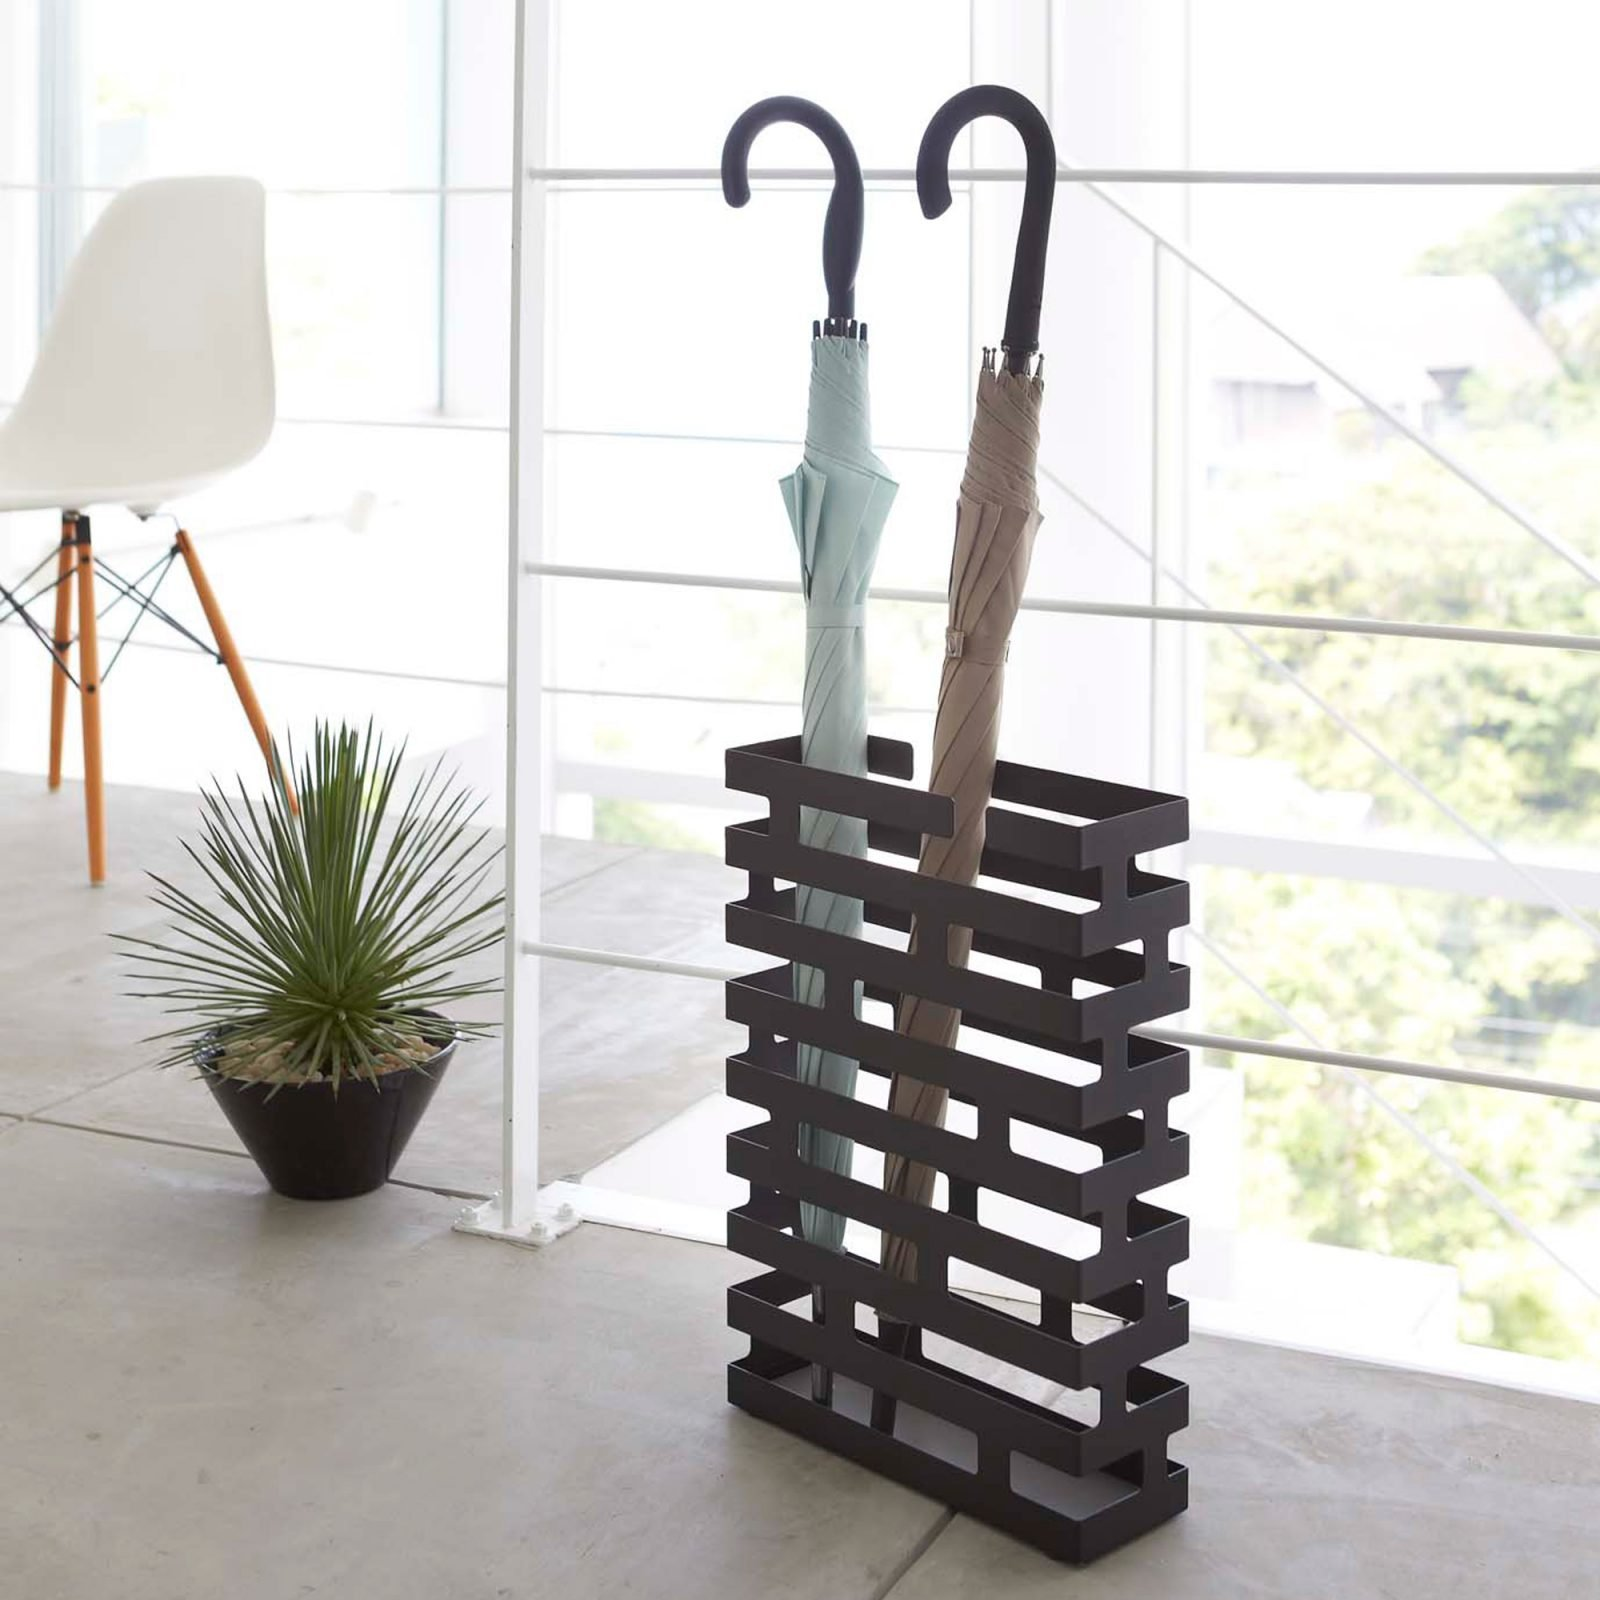 brick-rectangular-umbrella-stand-black-1